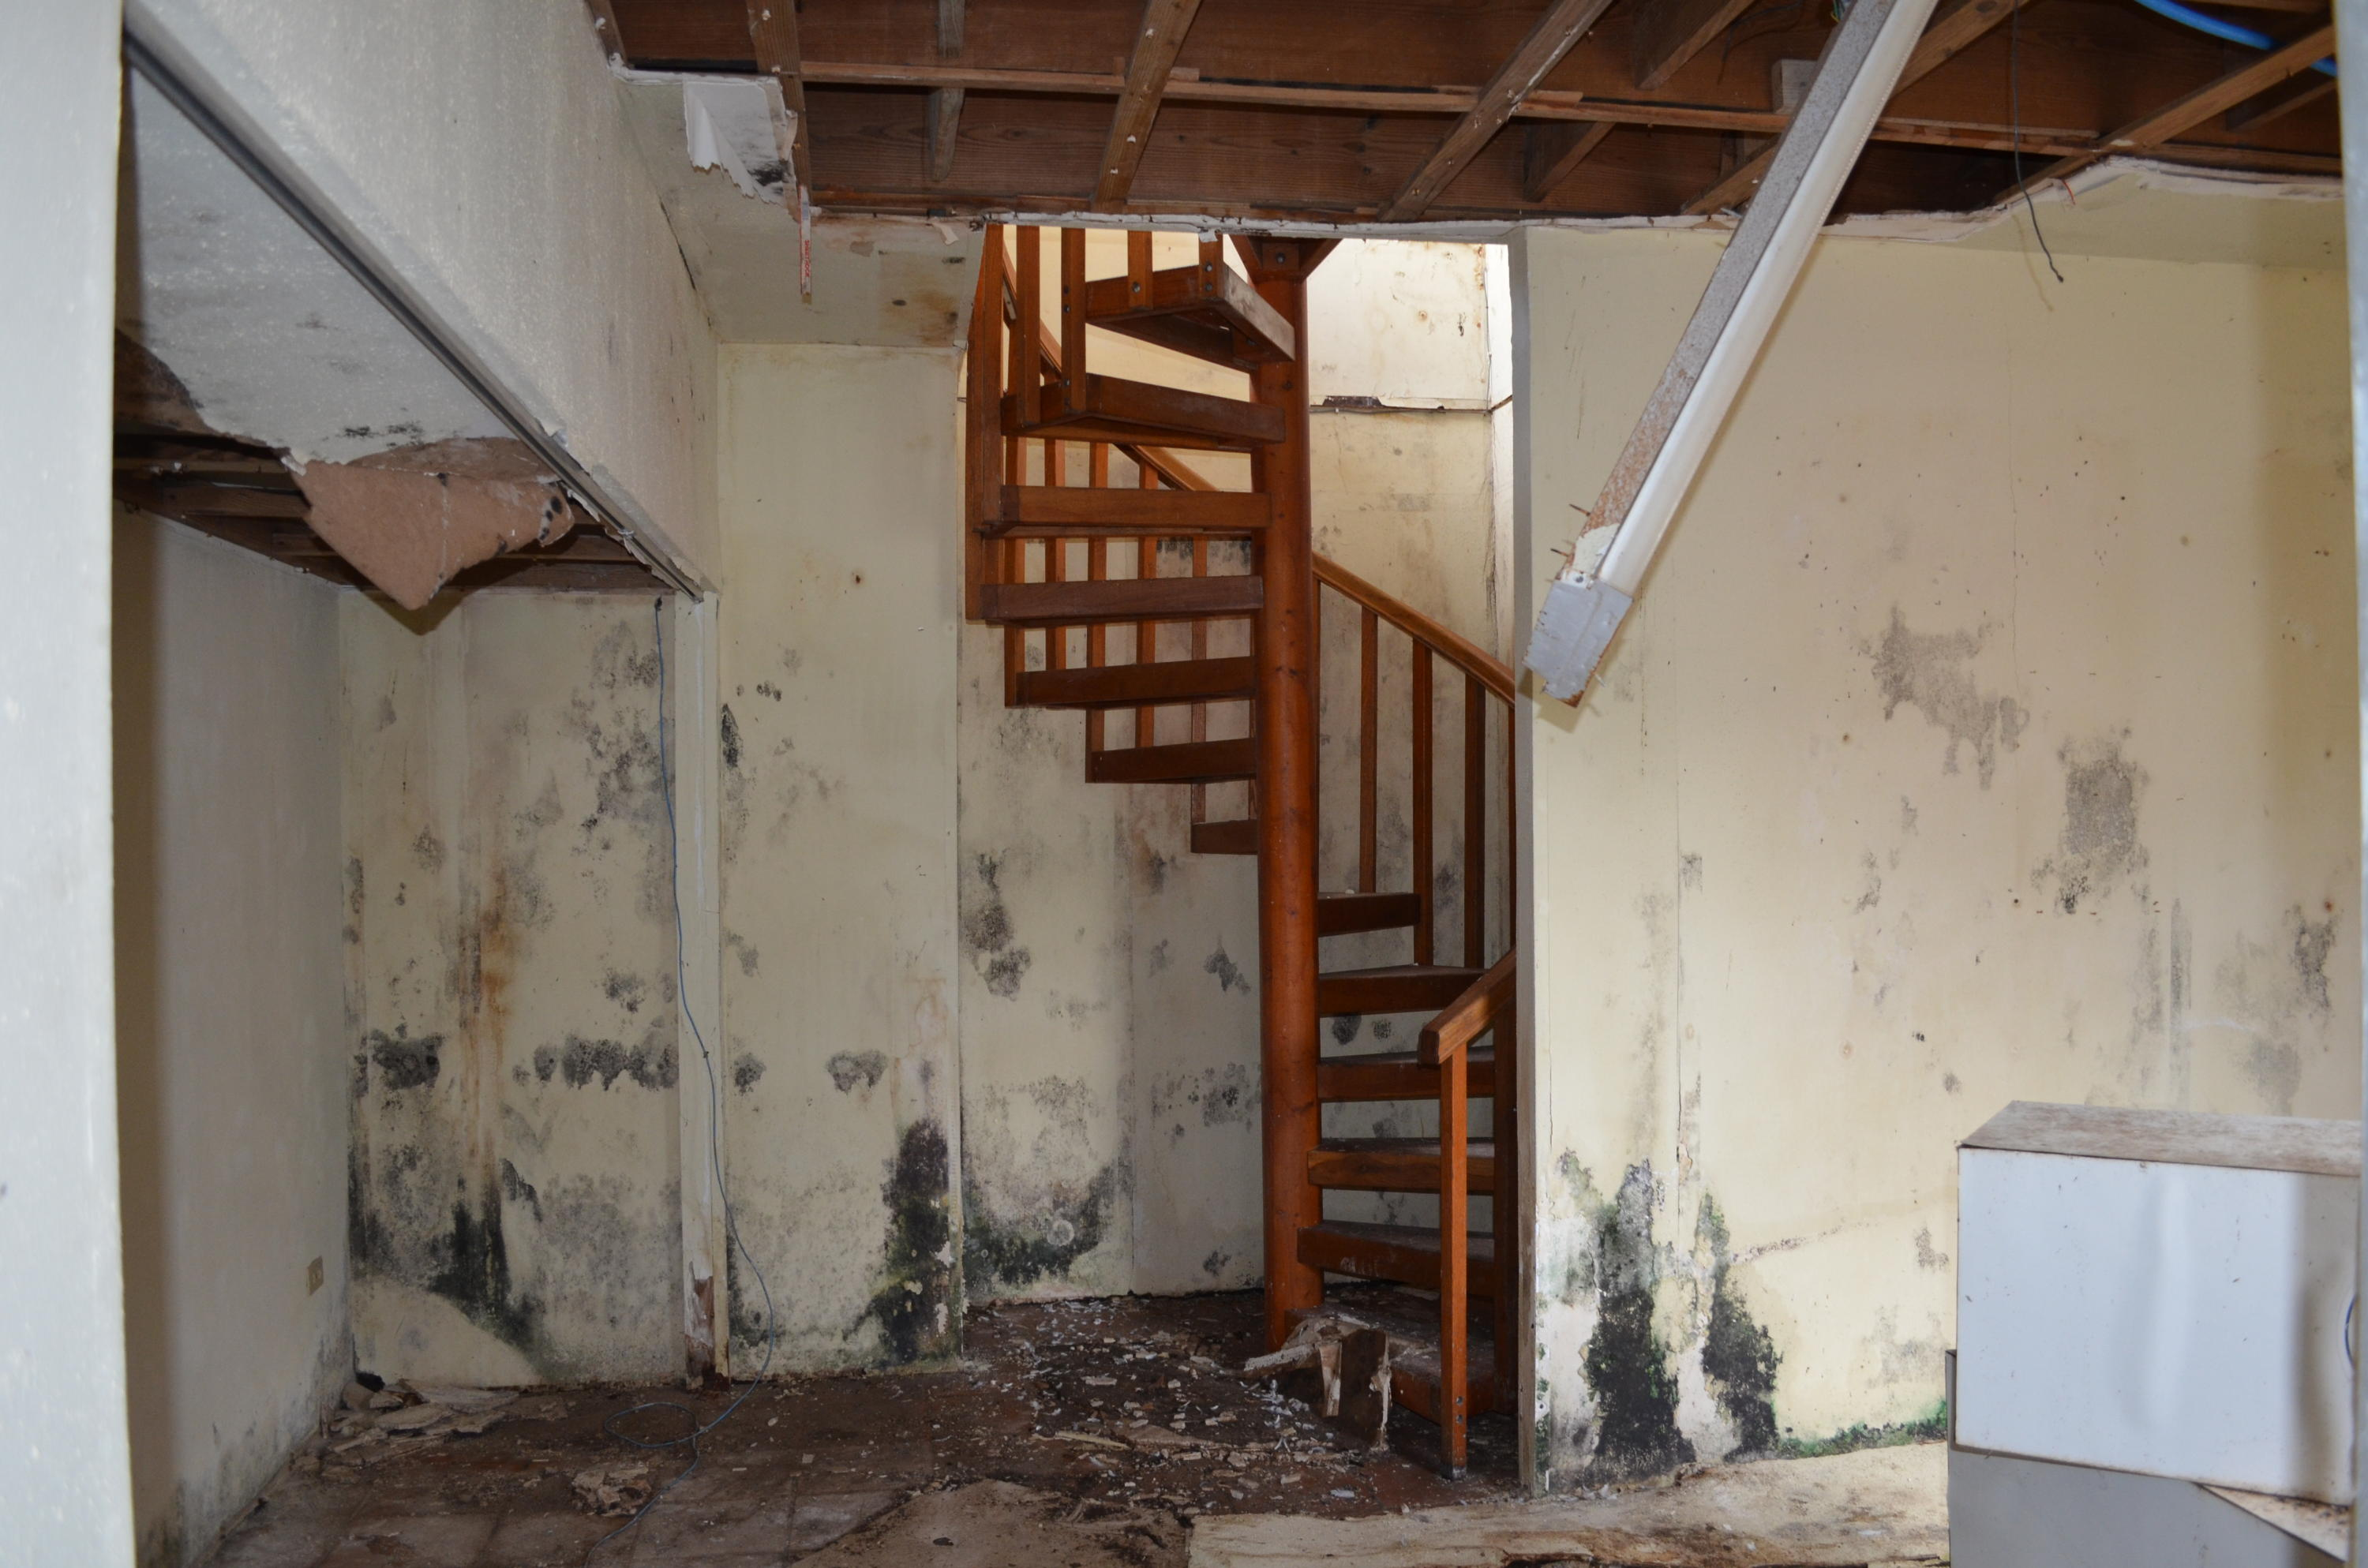 Staircase in upstairs space.